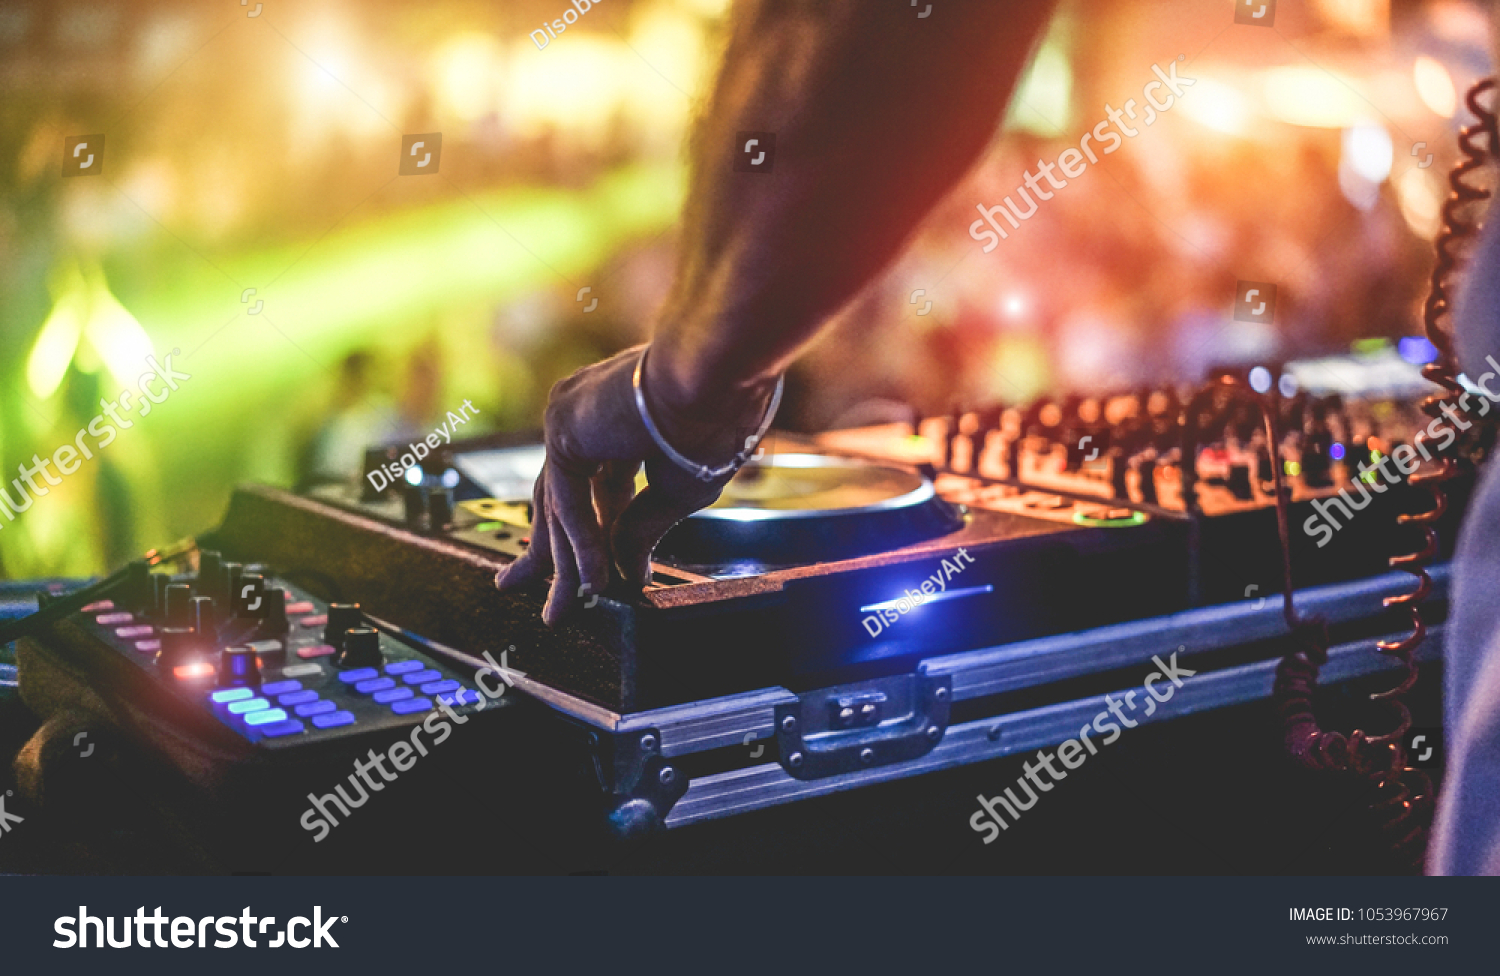 Dj mixing outdoor at beach party festival with crowd of people in background - Summer nightlife view of disco club outside - Soft focus on hand fingers - Fun ,youth,entertainment and fest concept #1053967967